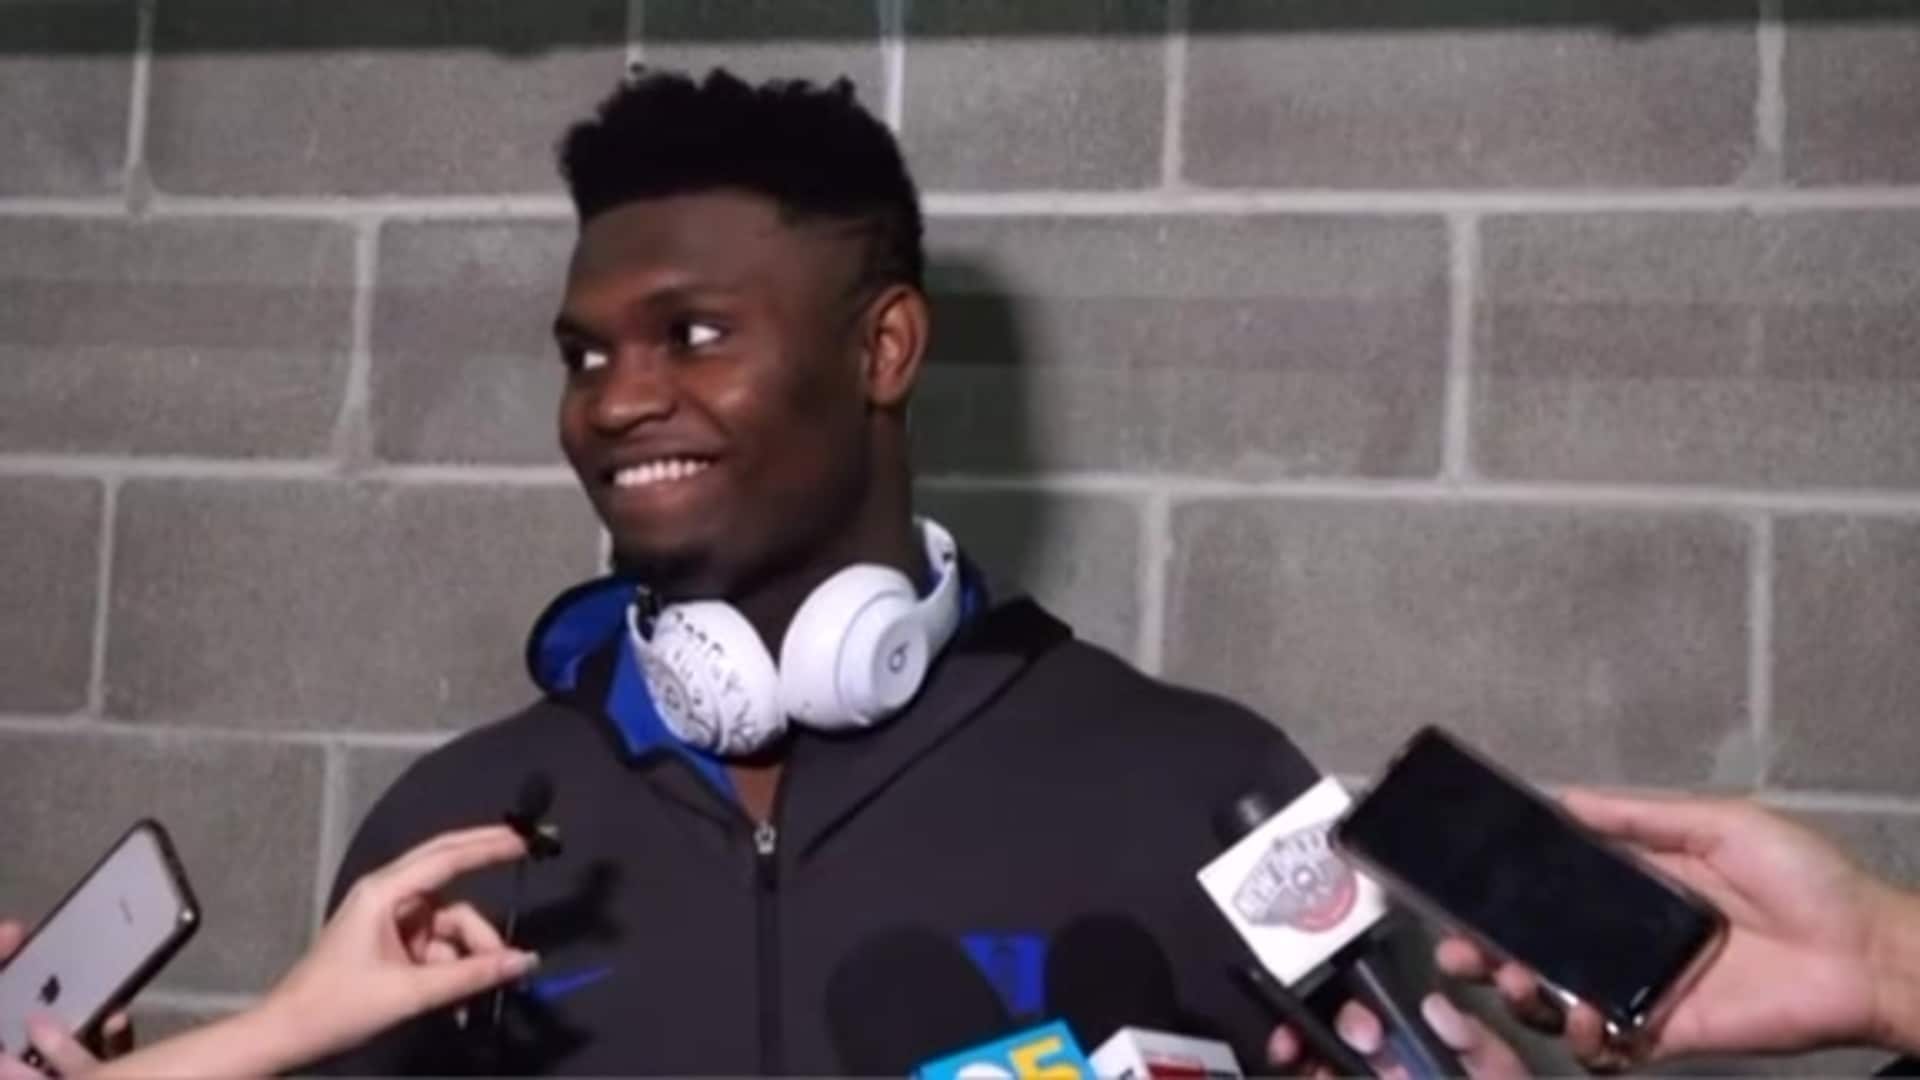 Pelicans-Warriors Postgame: Zion Williamson Interview 2-23-20